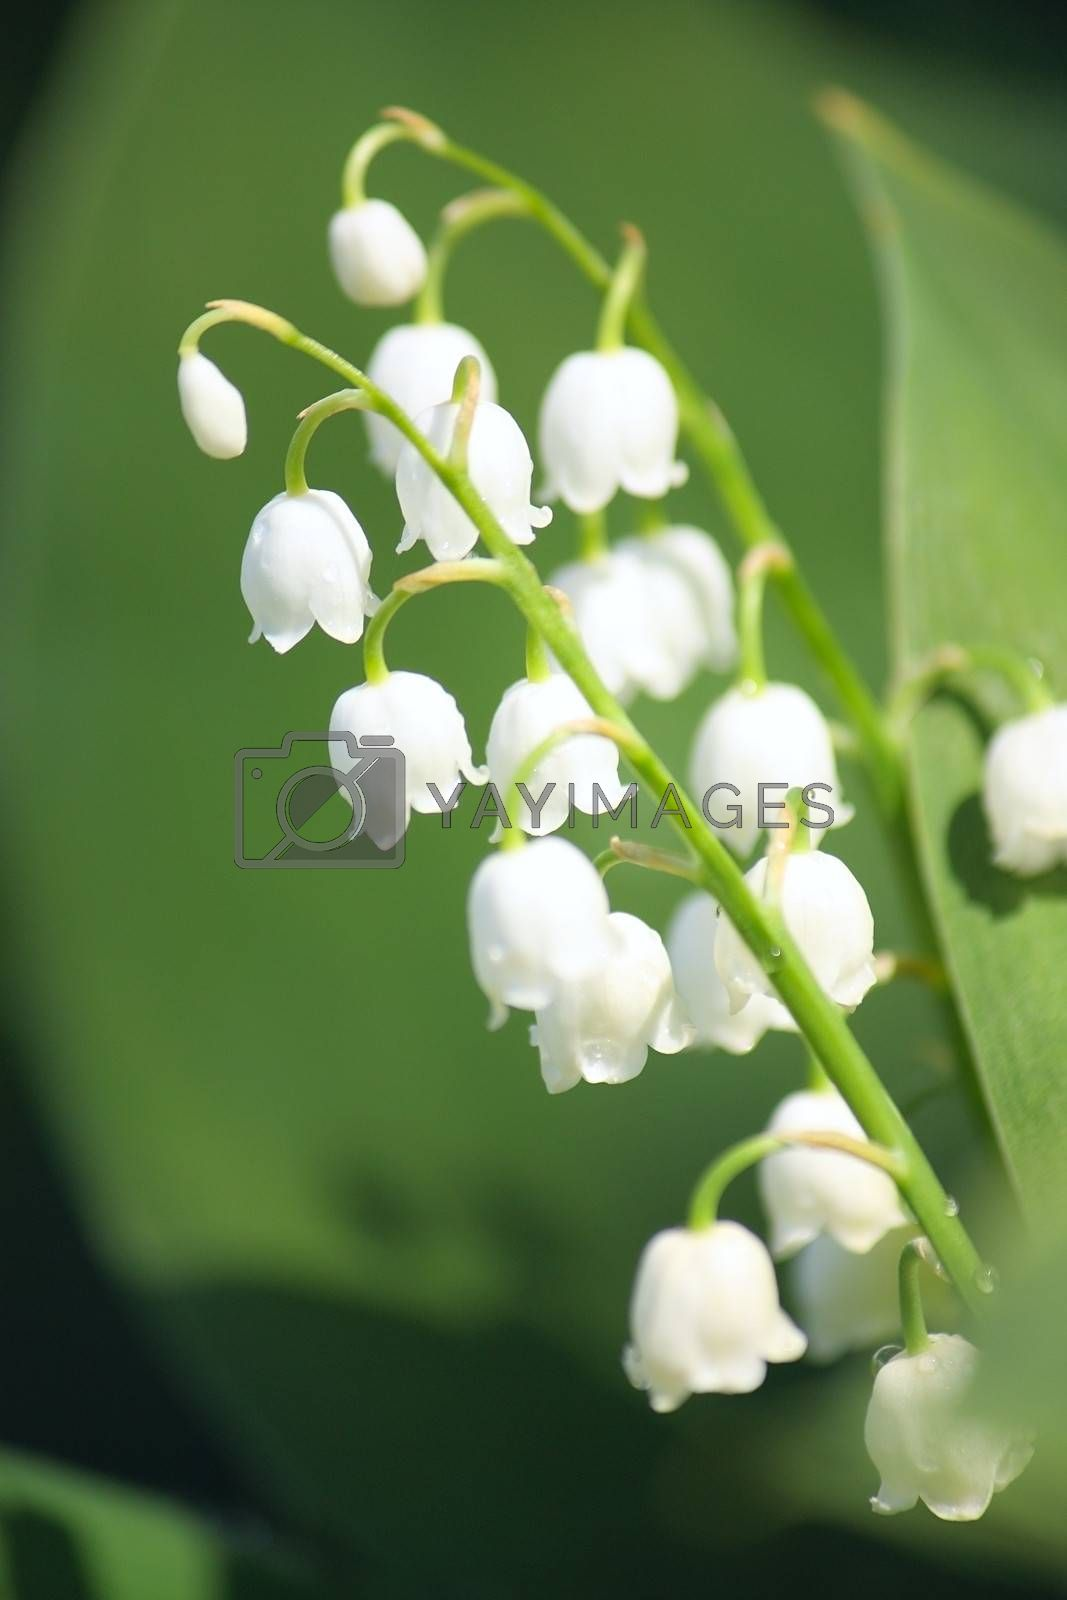 Lily of the valley closup photo